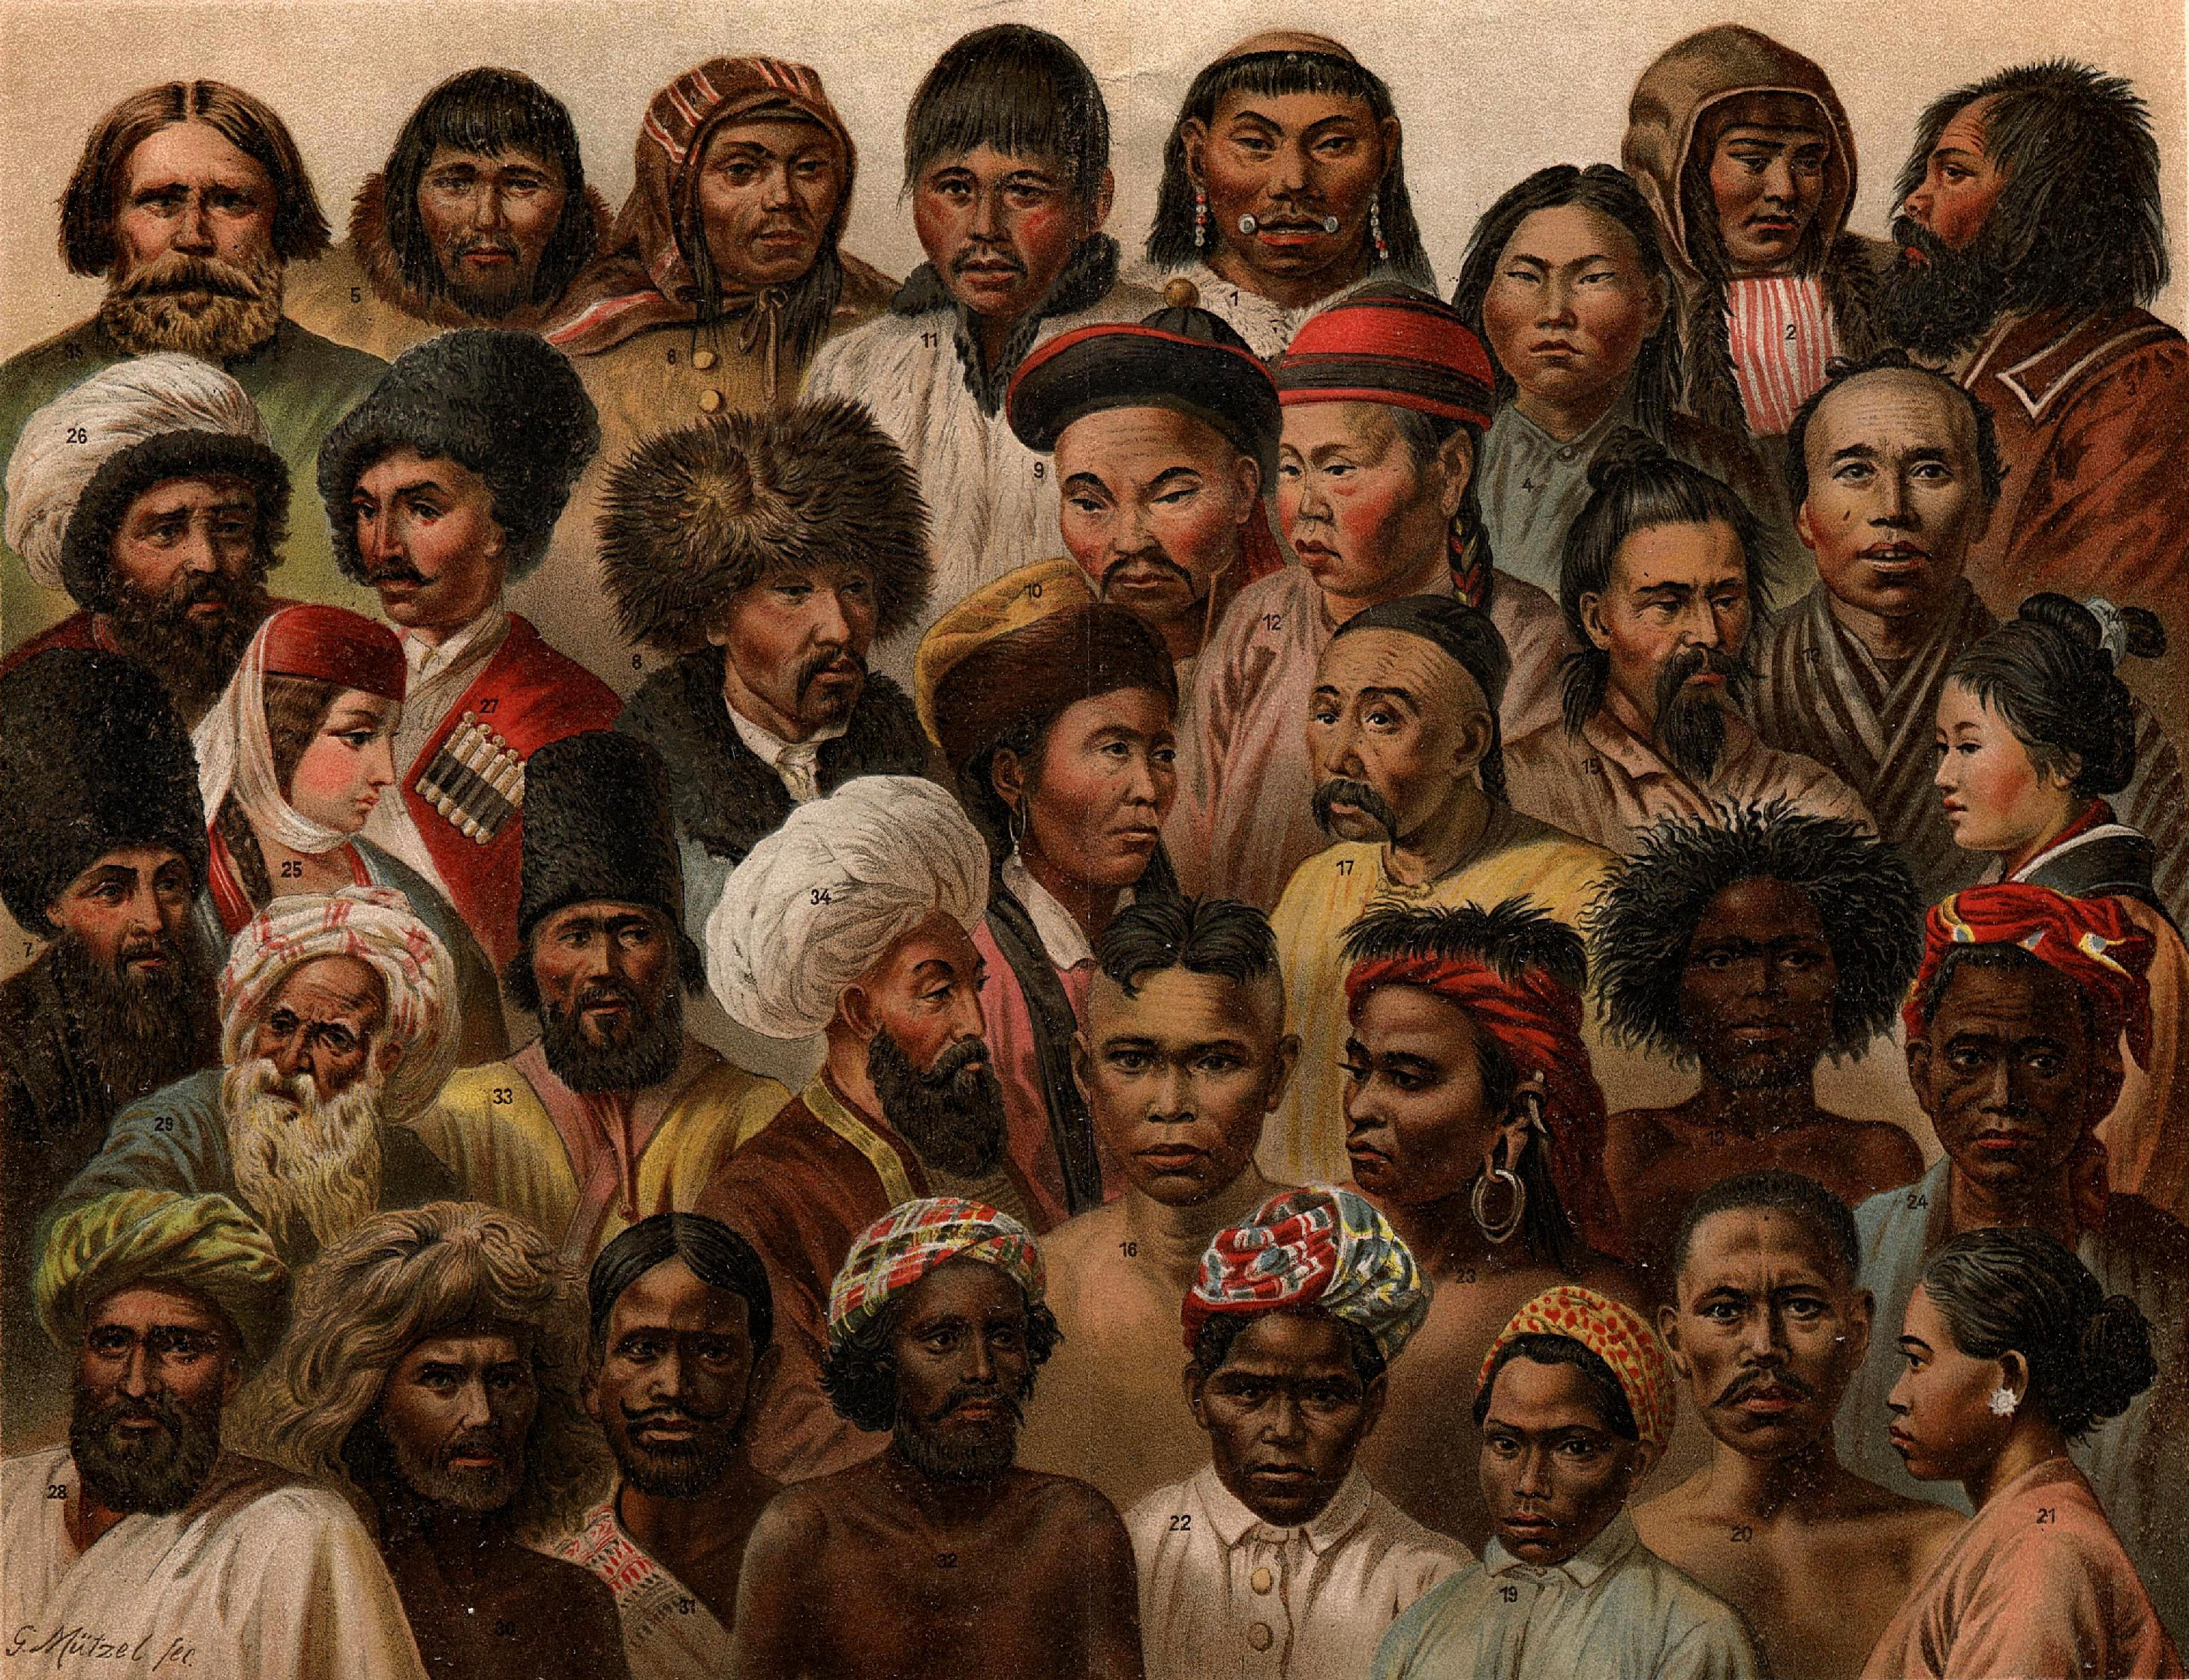 Anthropology of interracial groups foto 947